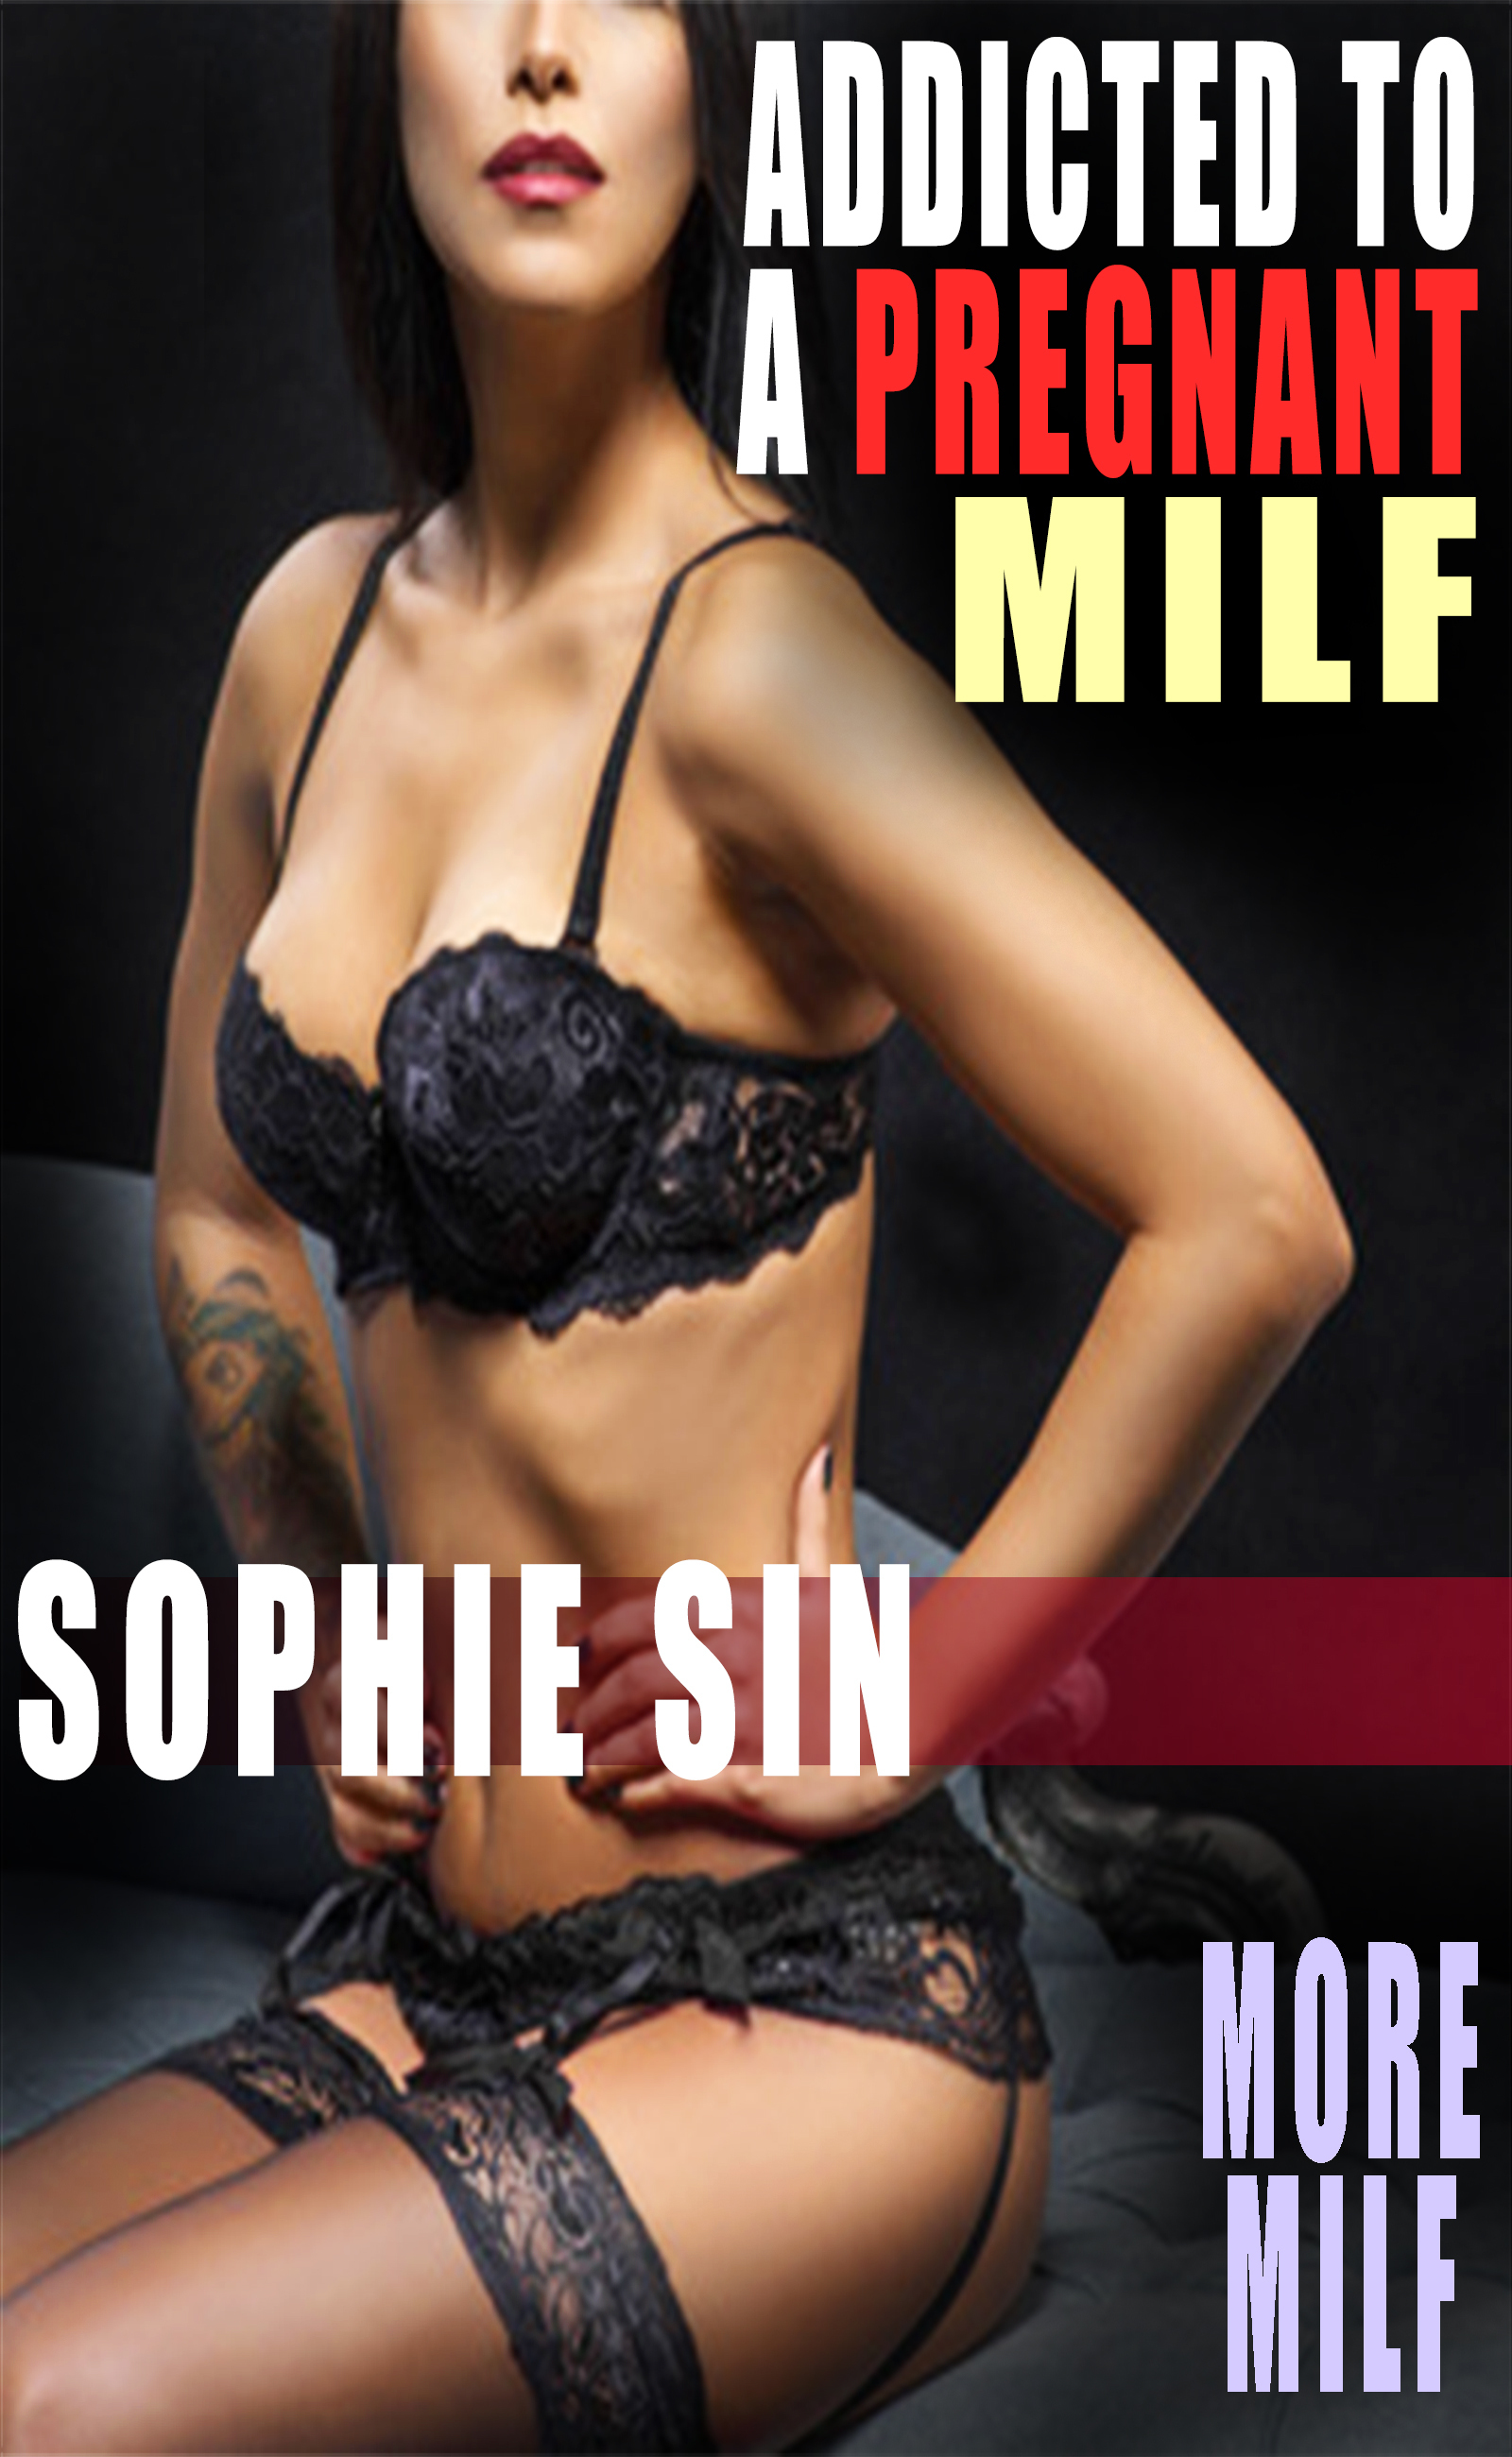 Addicted To A Pregnant MILF Sophie Sin